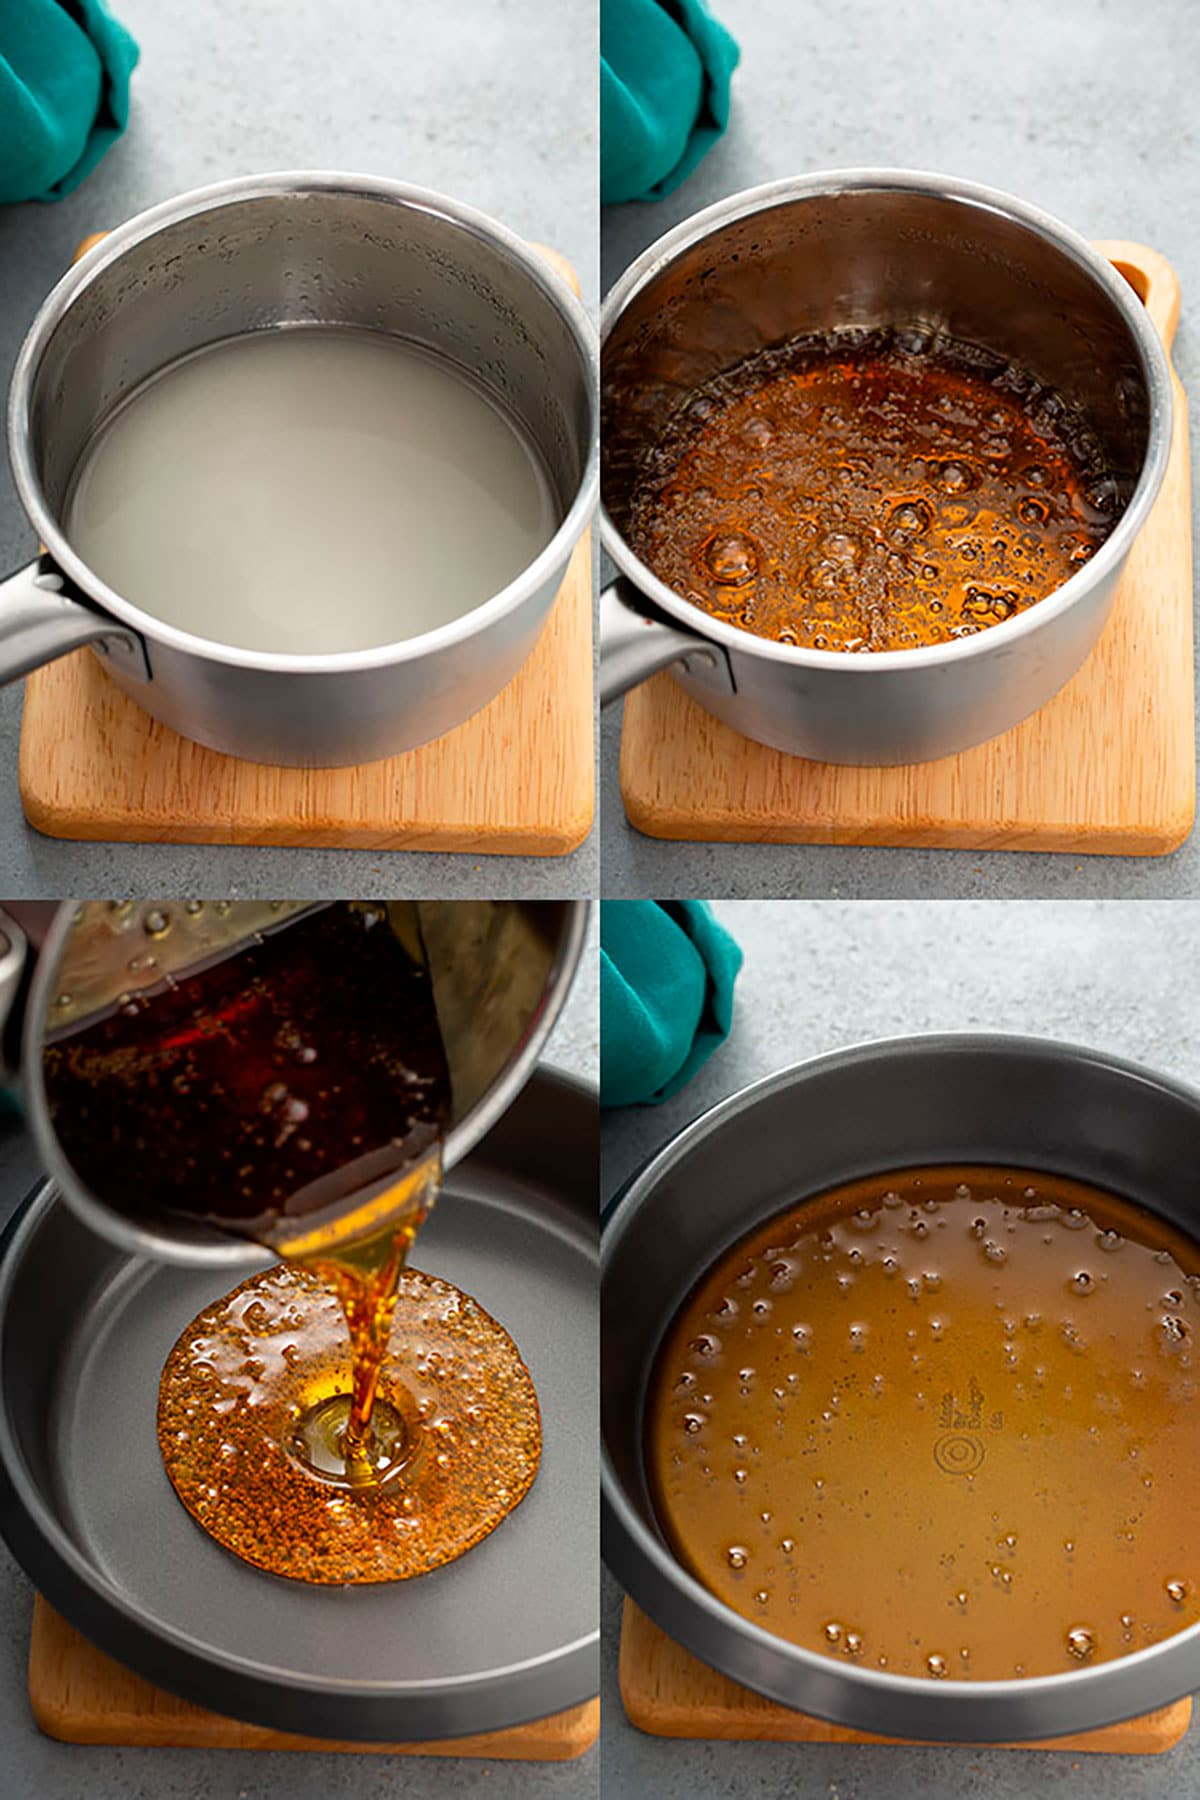 Step by step photos on how to make caramel for flan